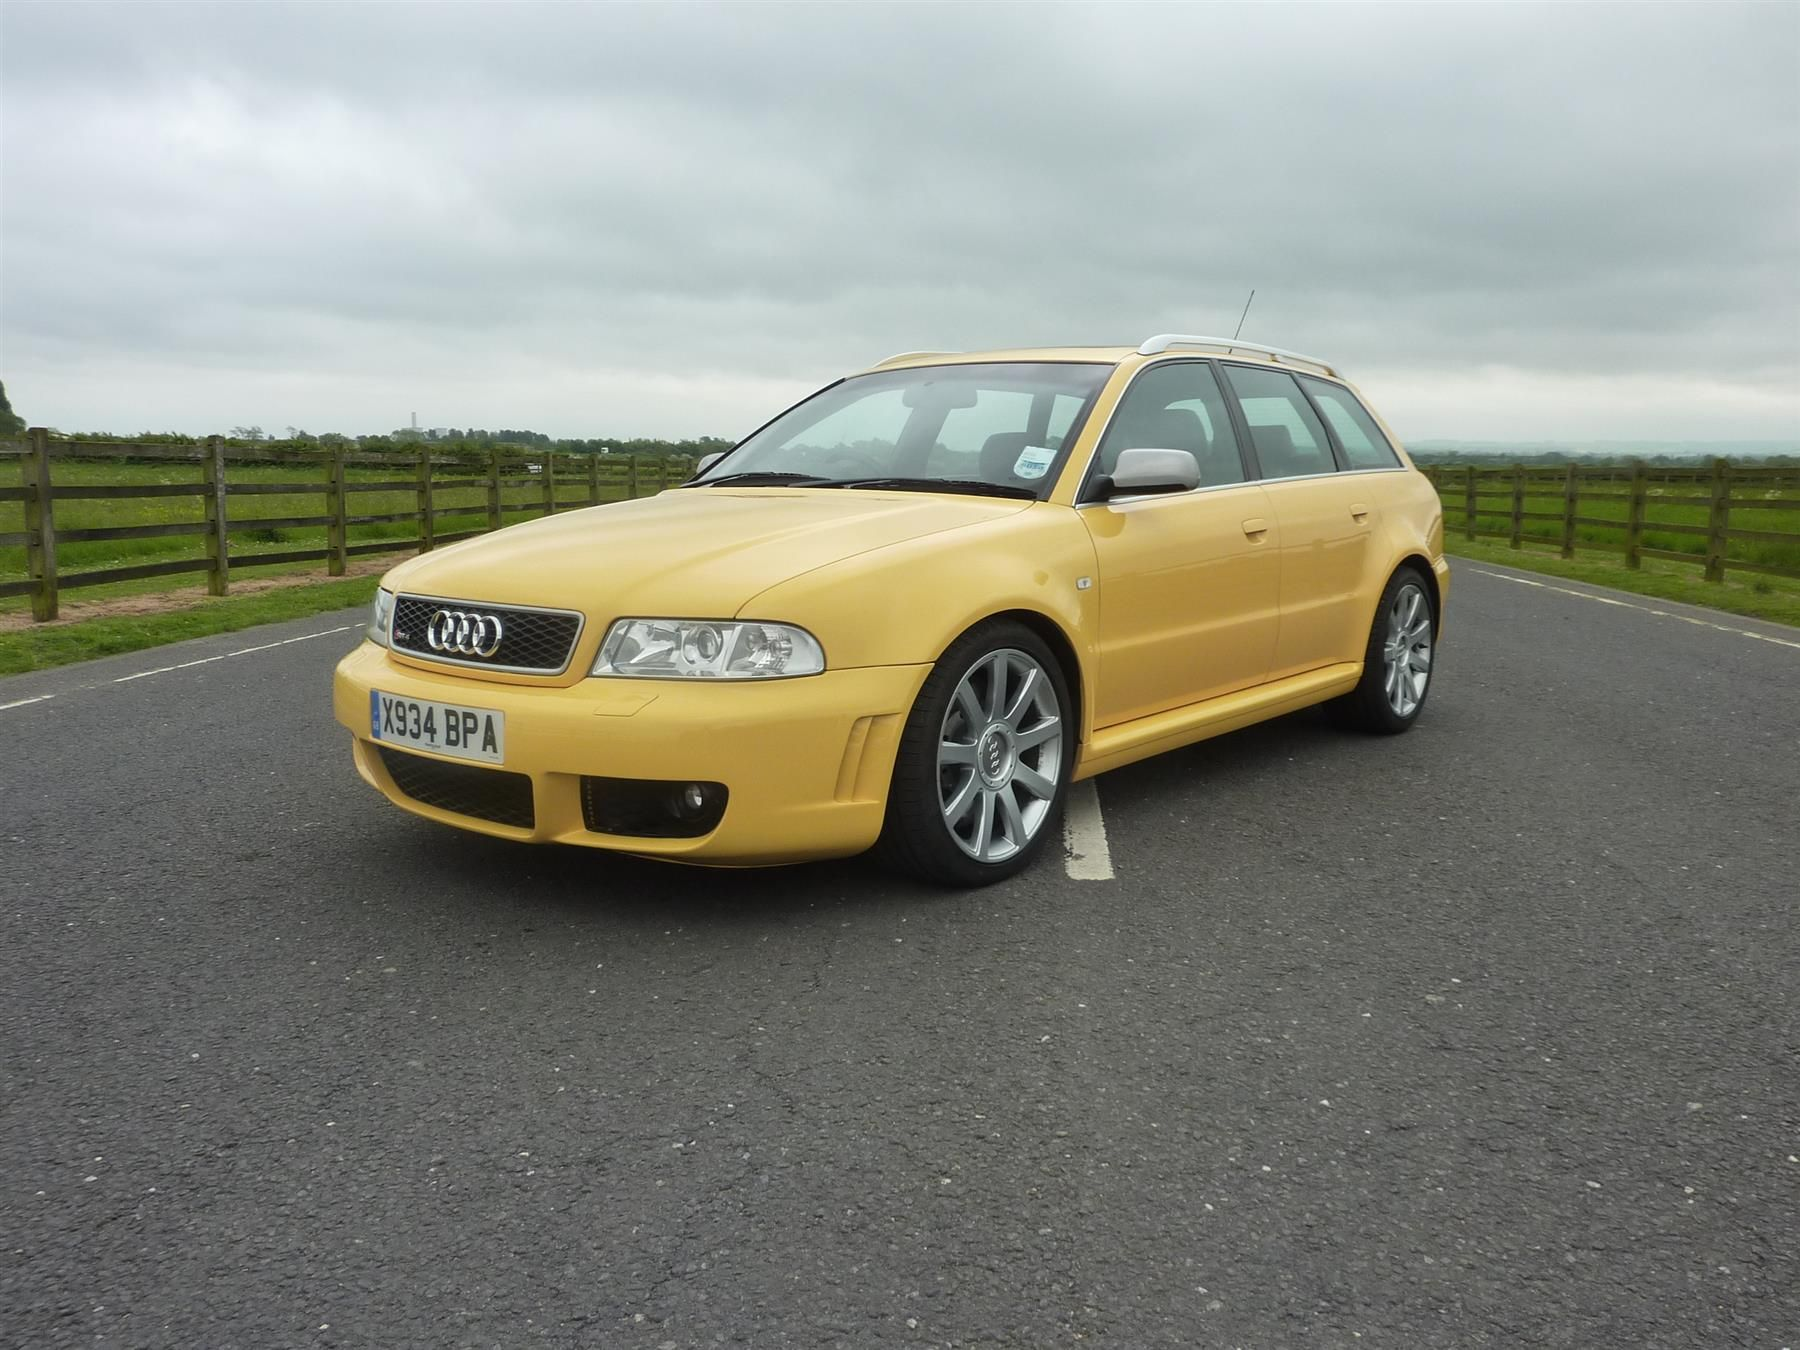 Used 2000 Audi RS4 RS4 QUATTRO AVANT for sale in Abingdon